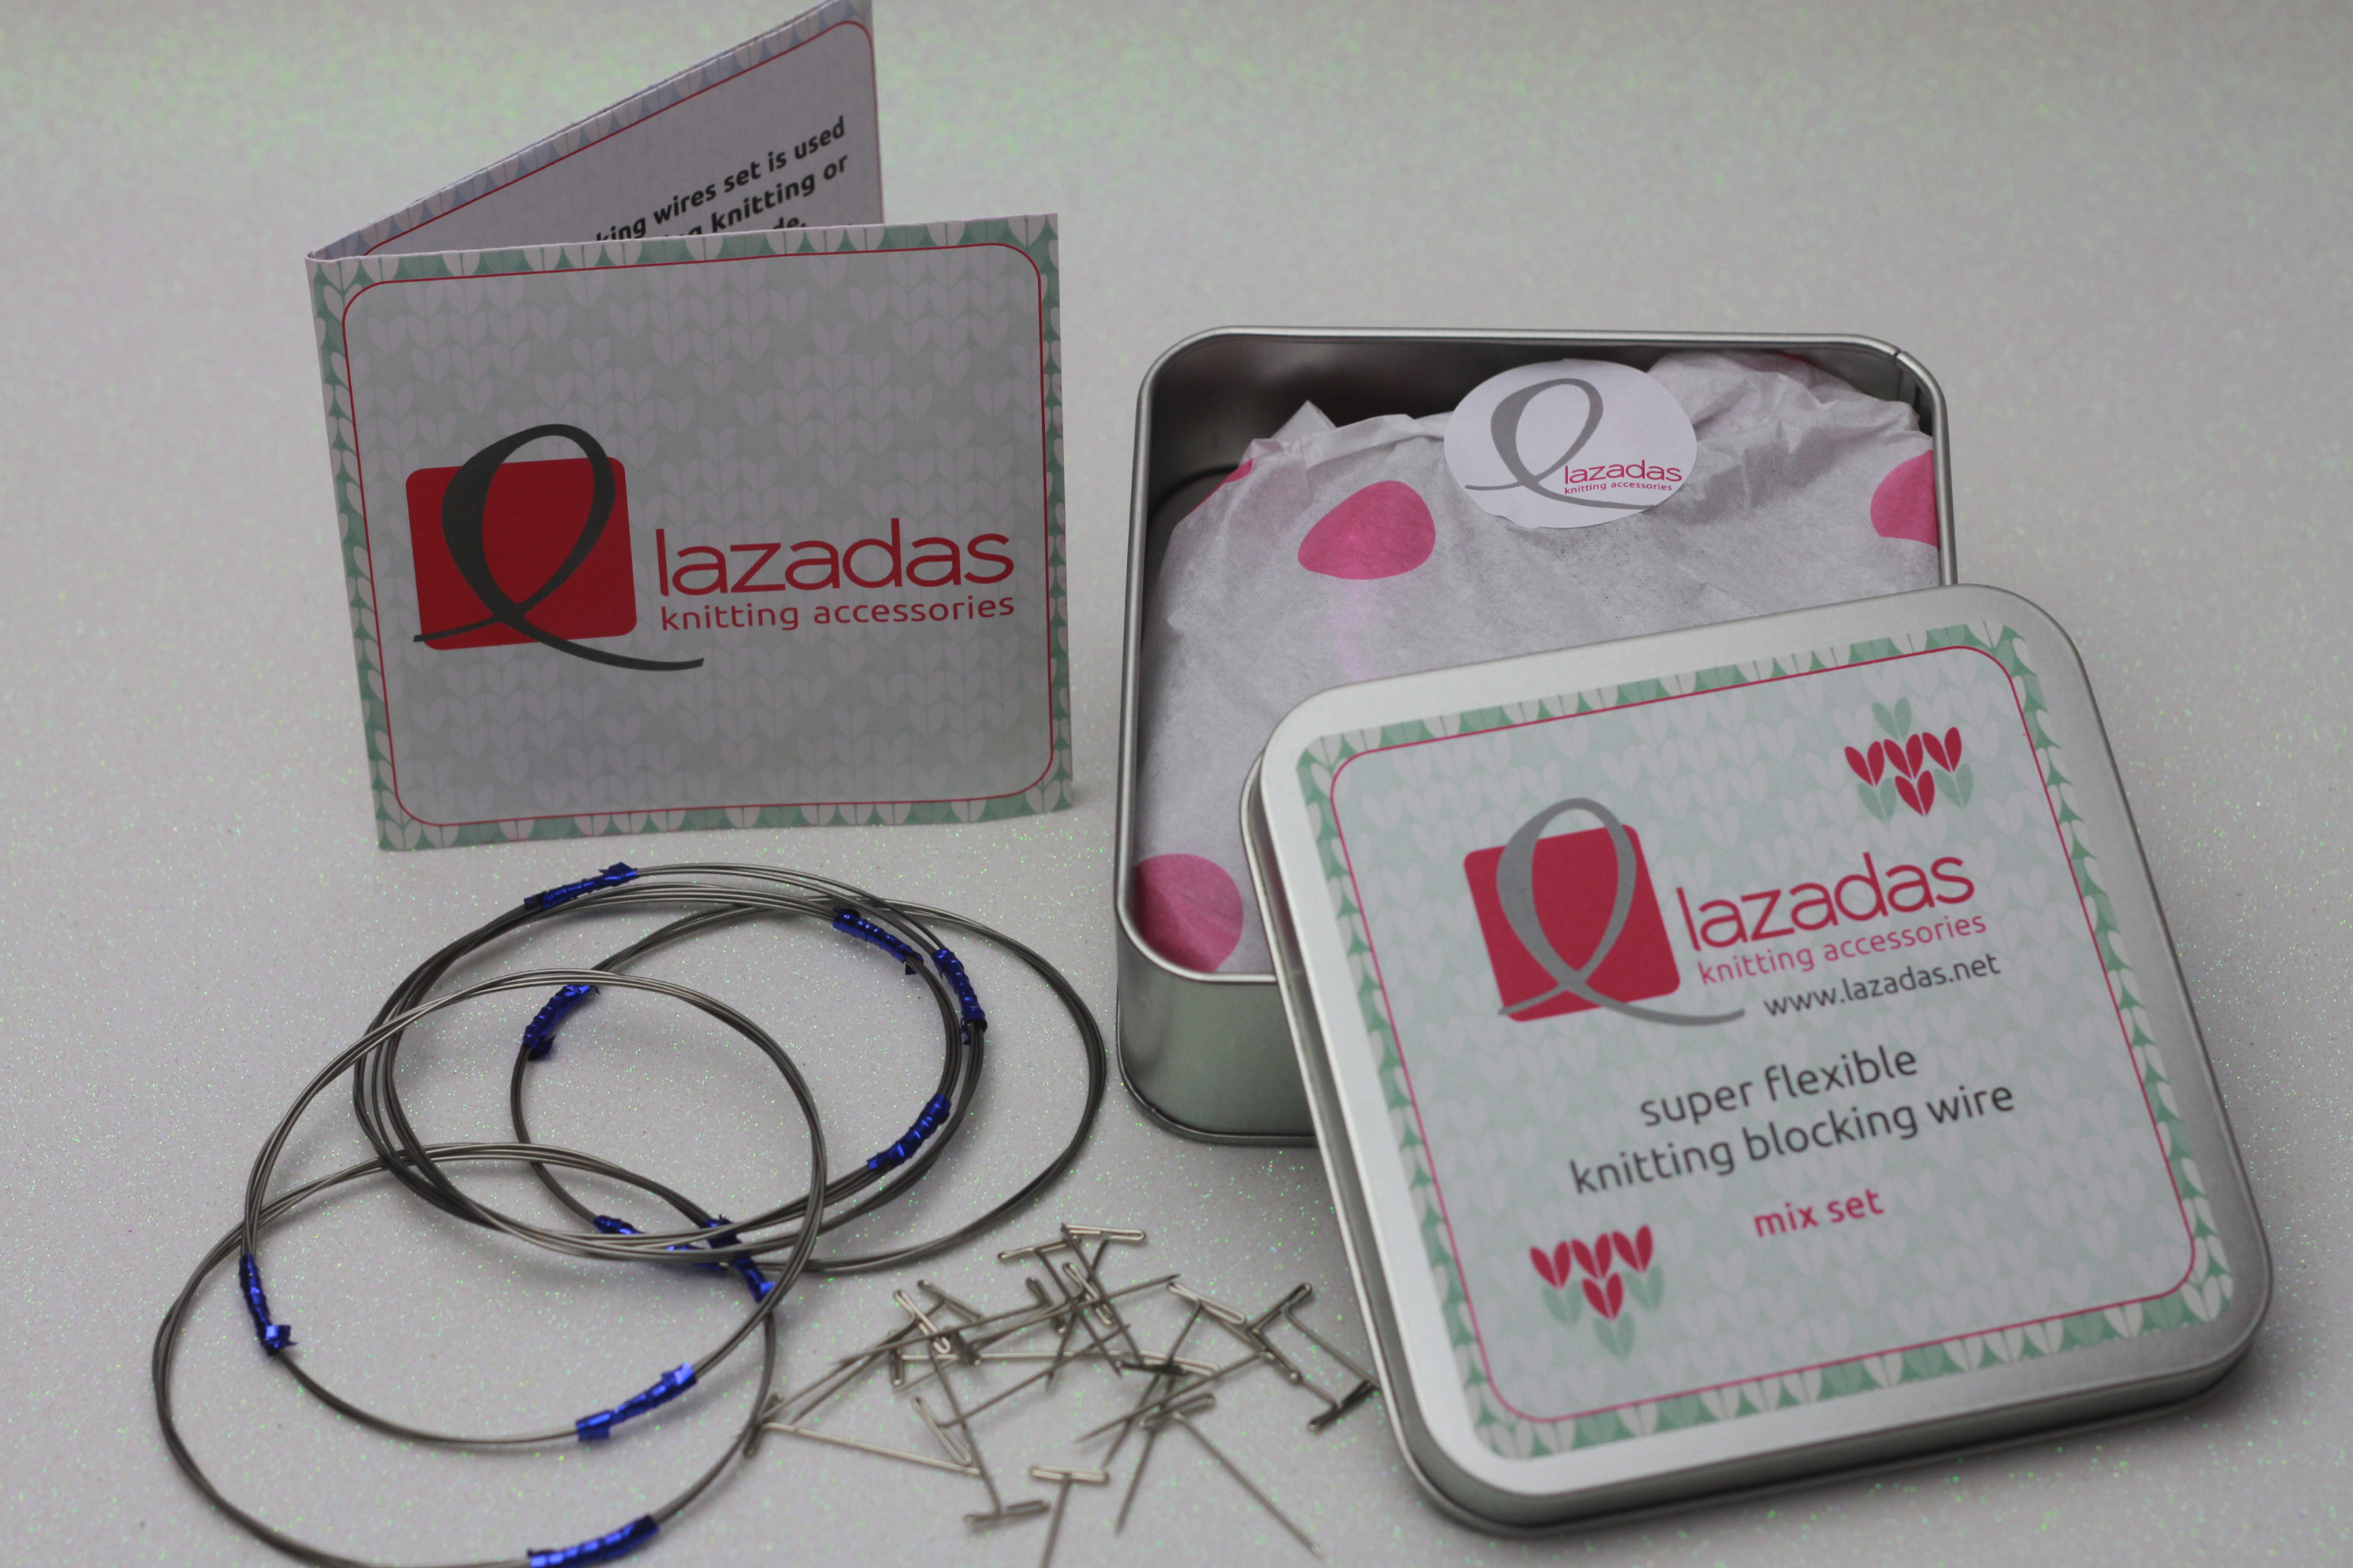 Lazadas Flexible Blocking Wires